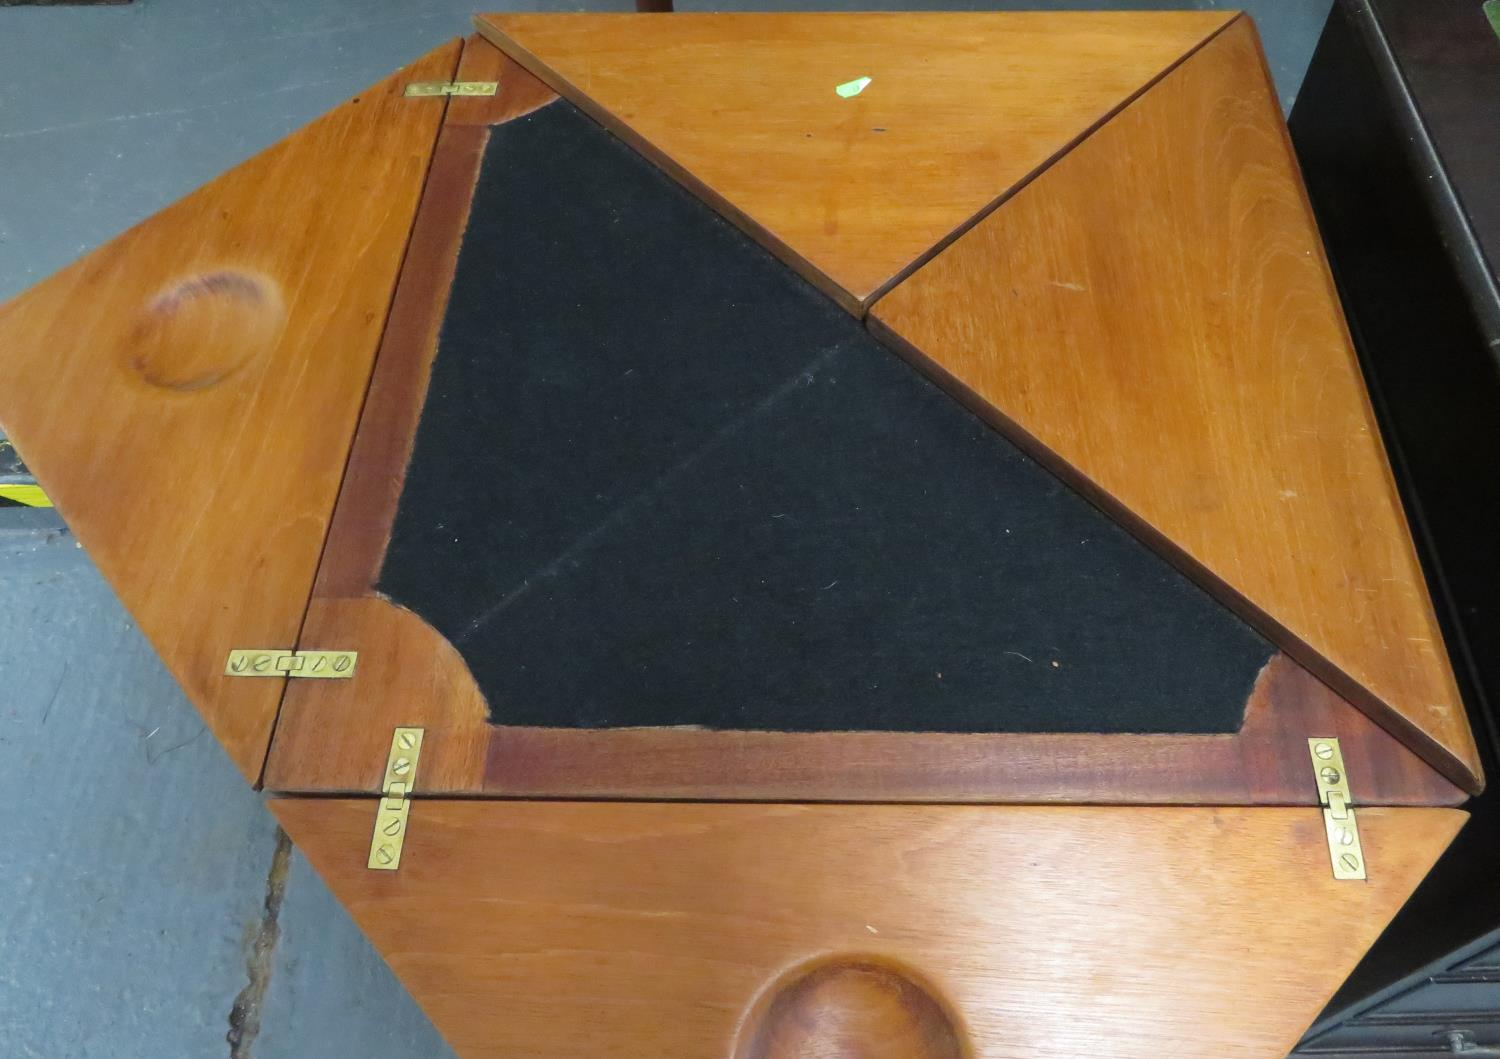 Lot 39 - Triangulated card table